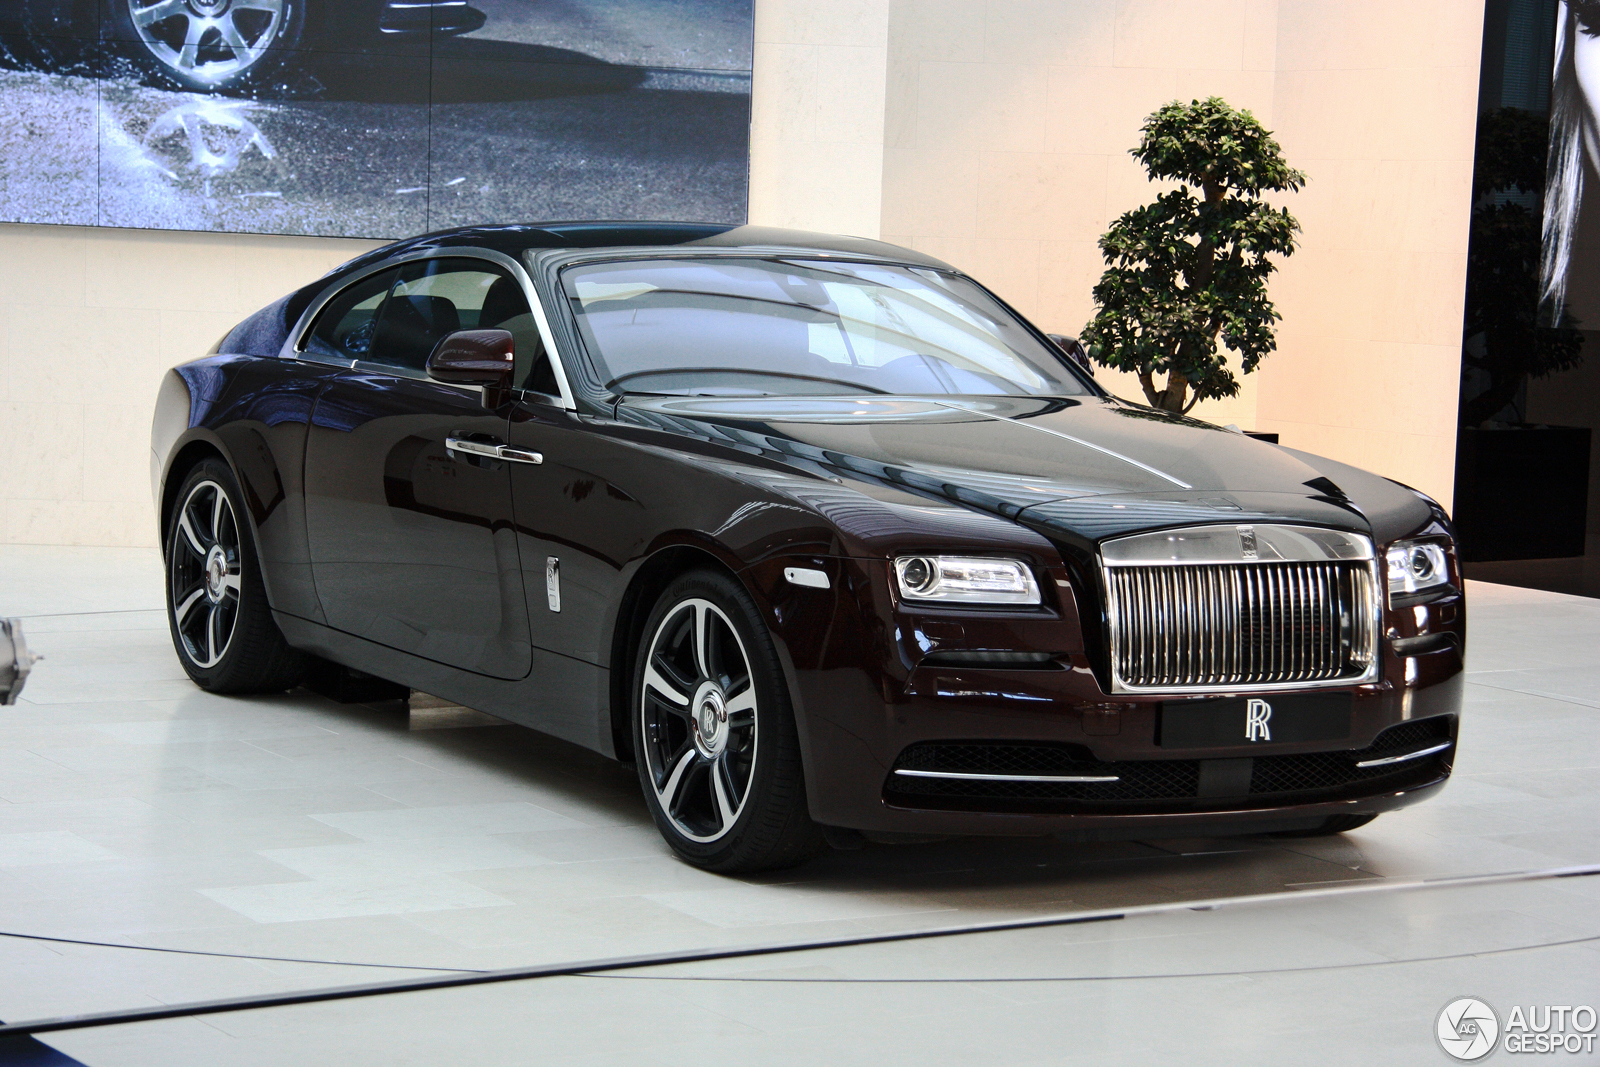 bmw shows beautiful rolls royce wraith at bmw welt. Black Bedroom Furniture Sets. Home Design Ideas